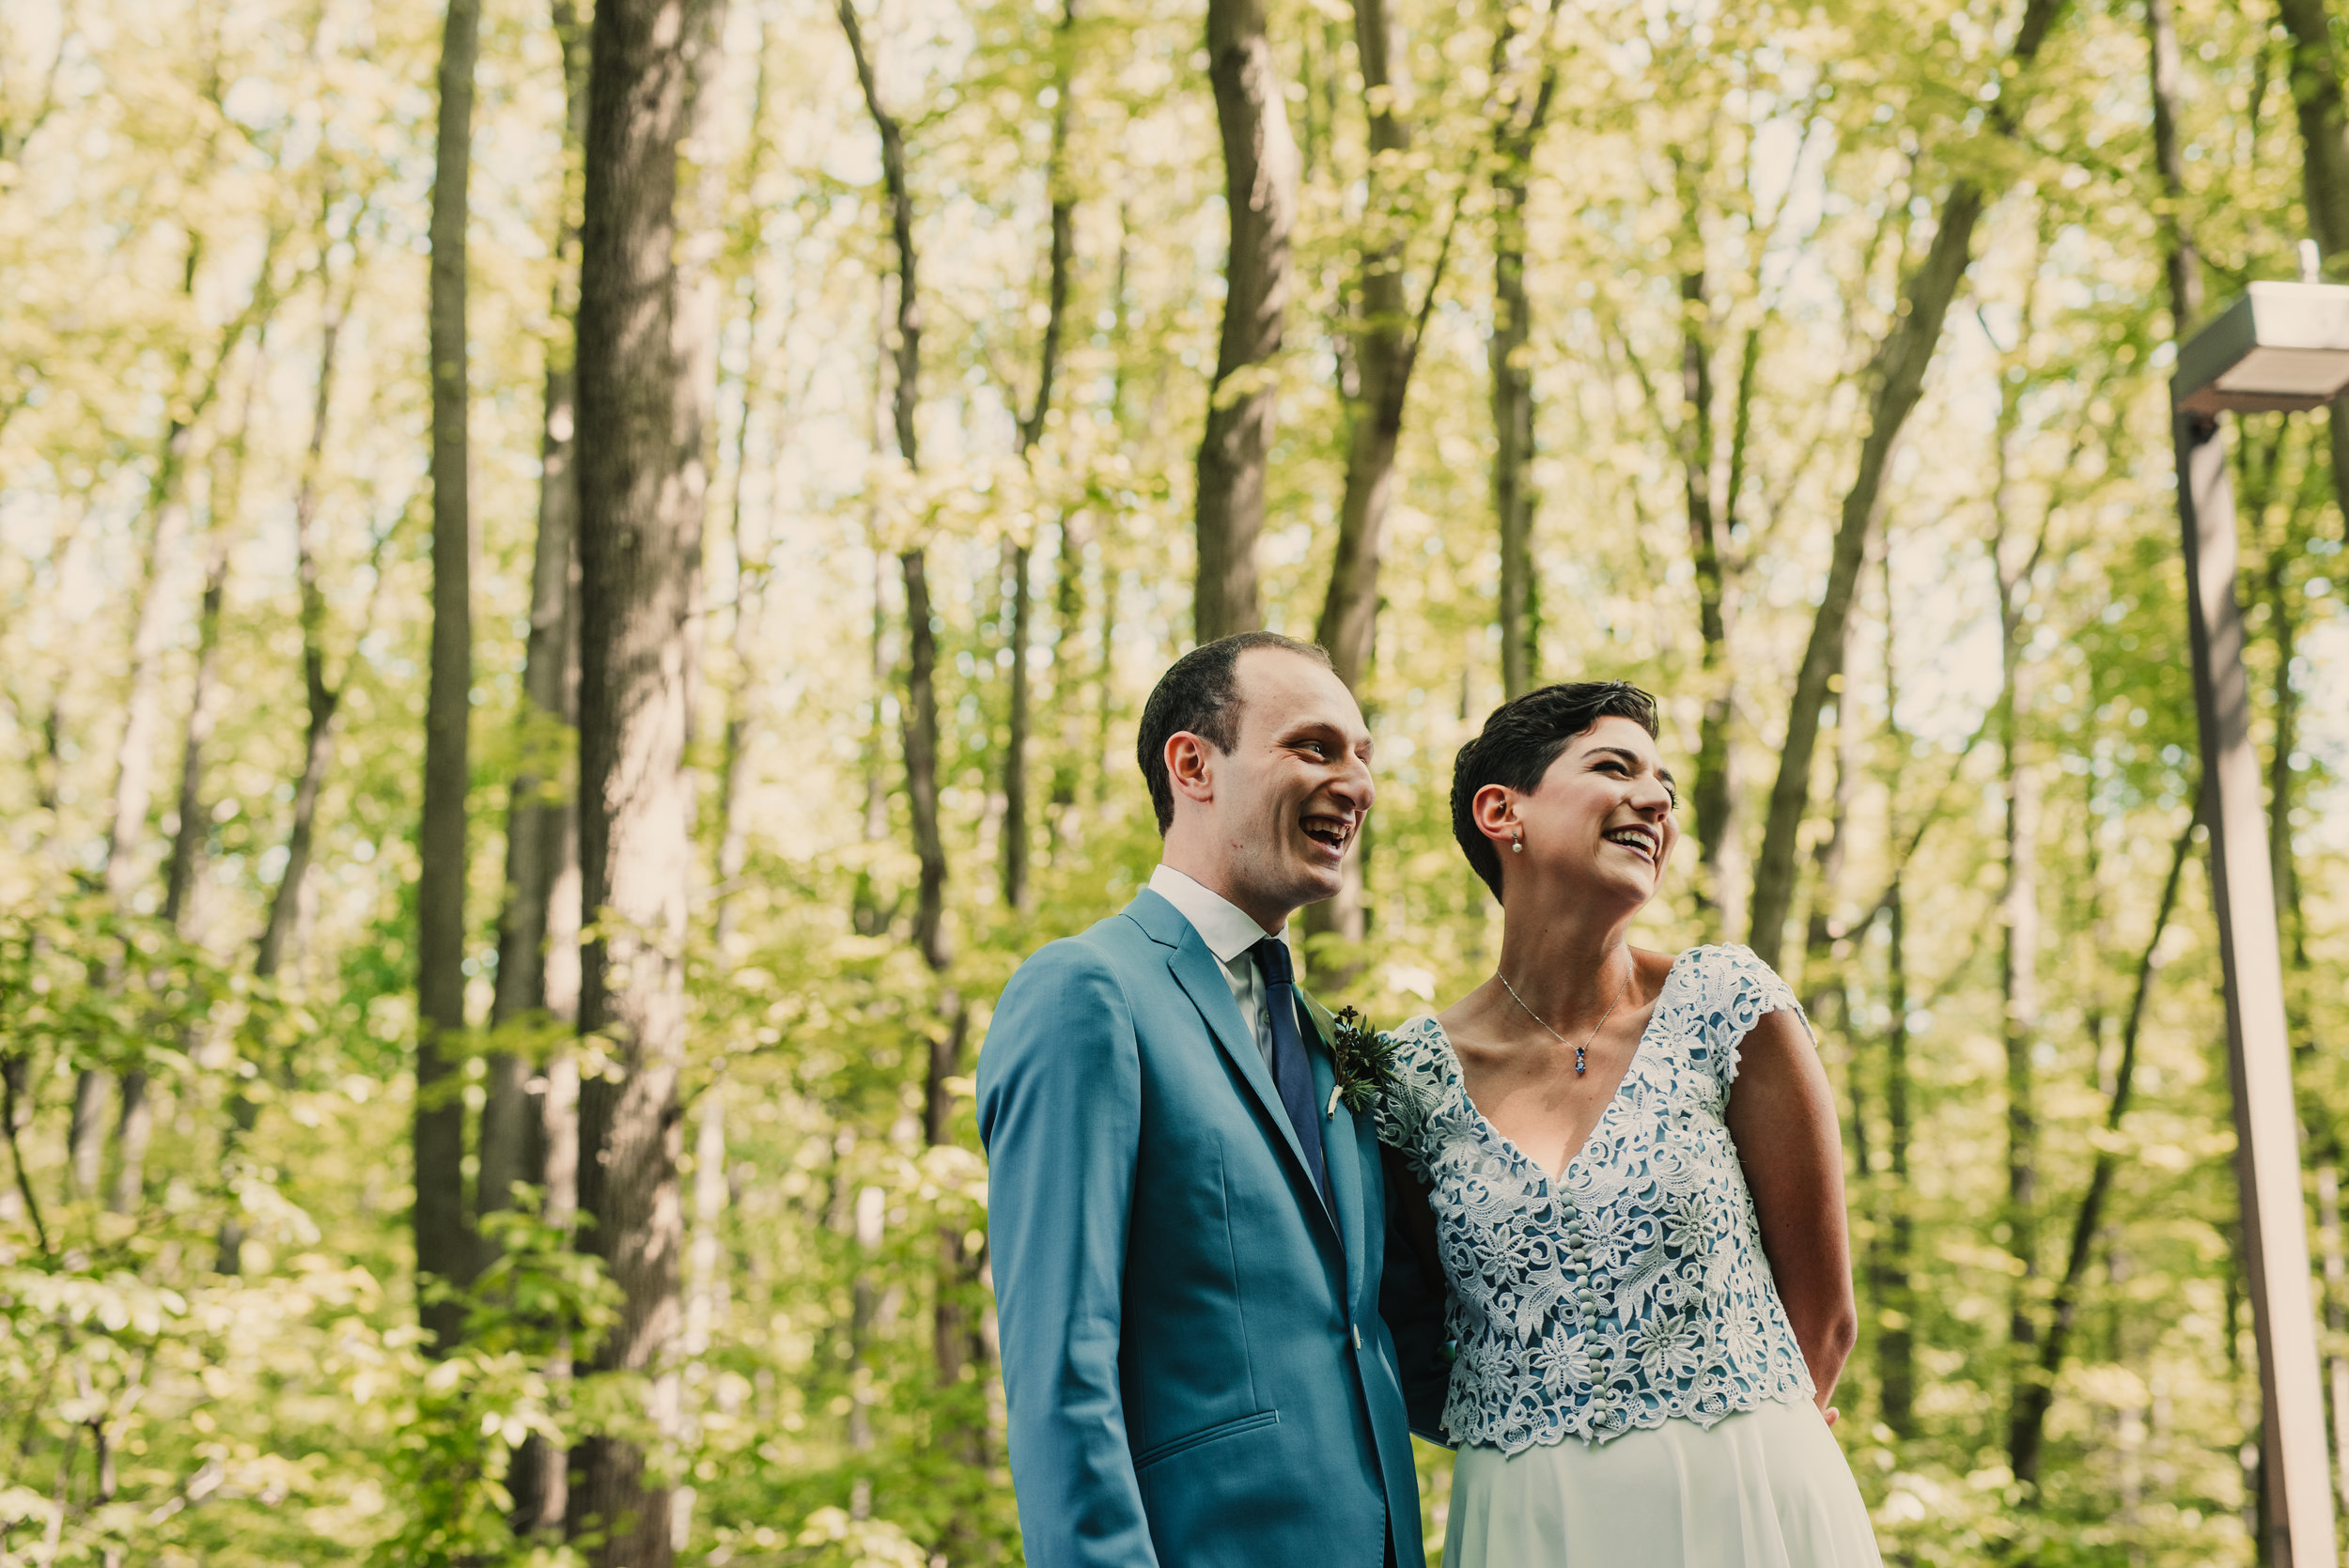 Naomi & Elan - Reading each other's love letters before the first look, accents of blue everywhere, and the liveliest Horah you've ever seen. This was one of the most energetic and heartwarming wedding days, and I'm honored to have captured it all.